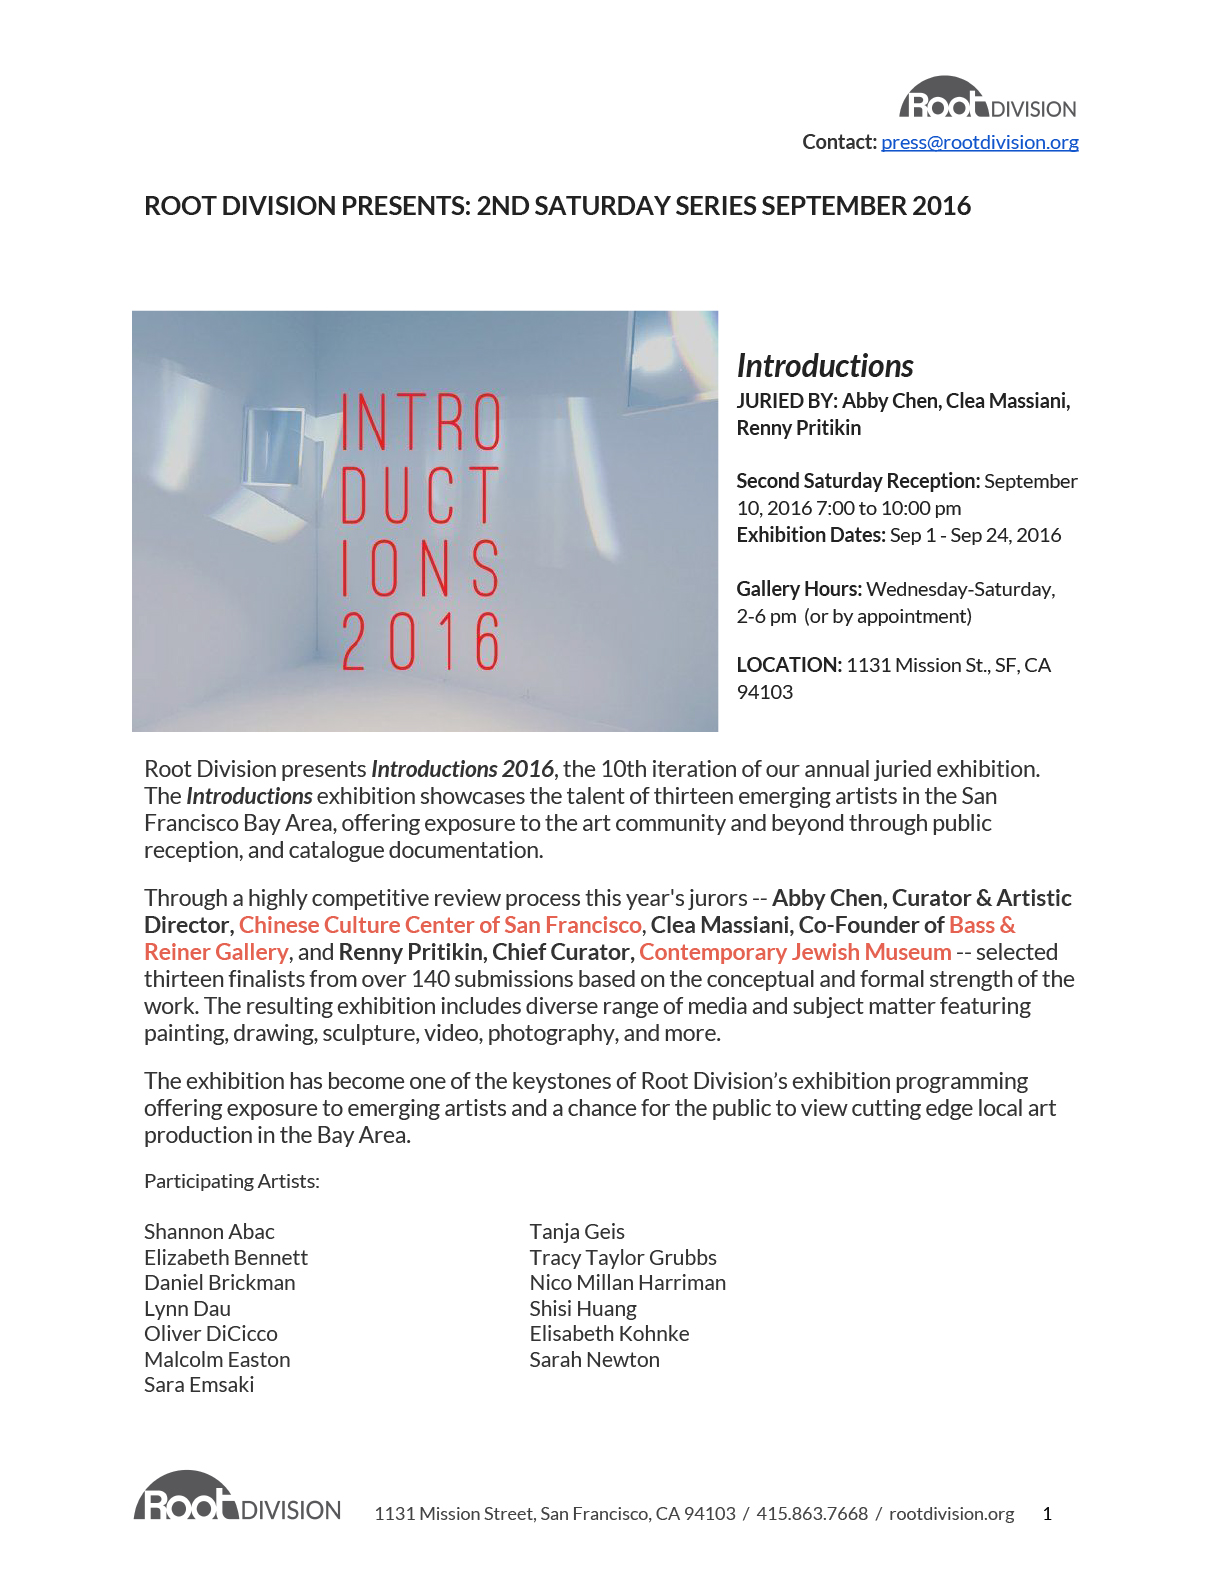 PressRelease-Introductions2016atRootDivision-1.jpg